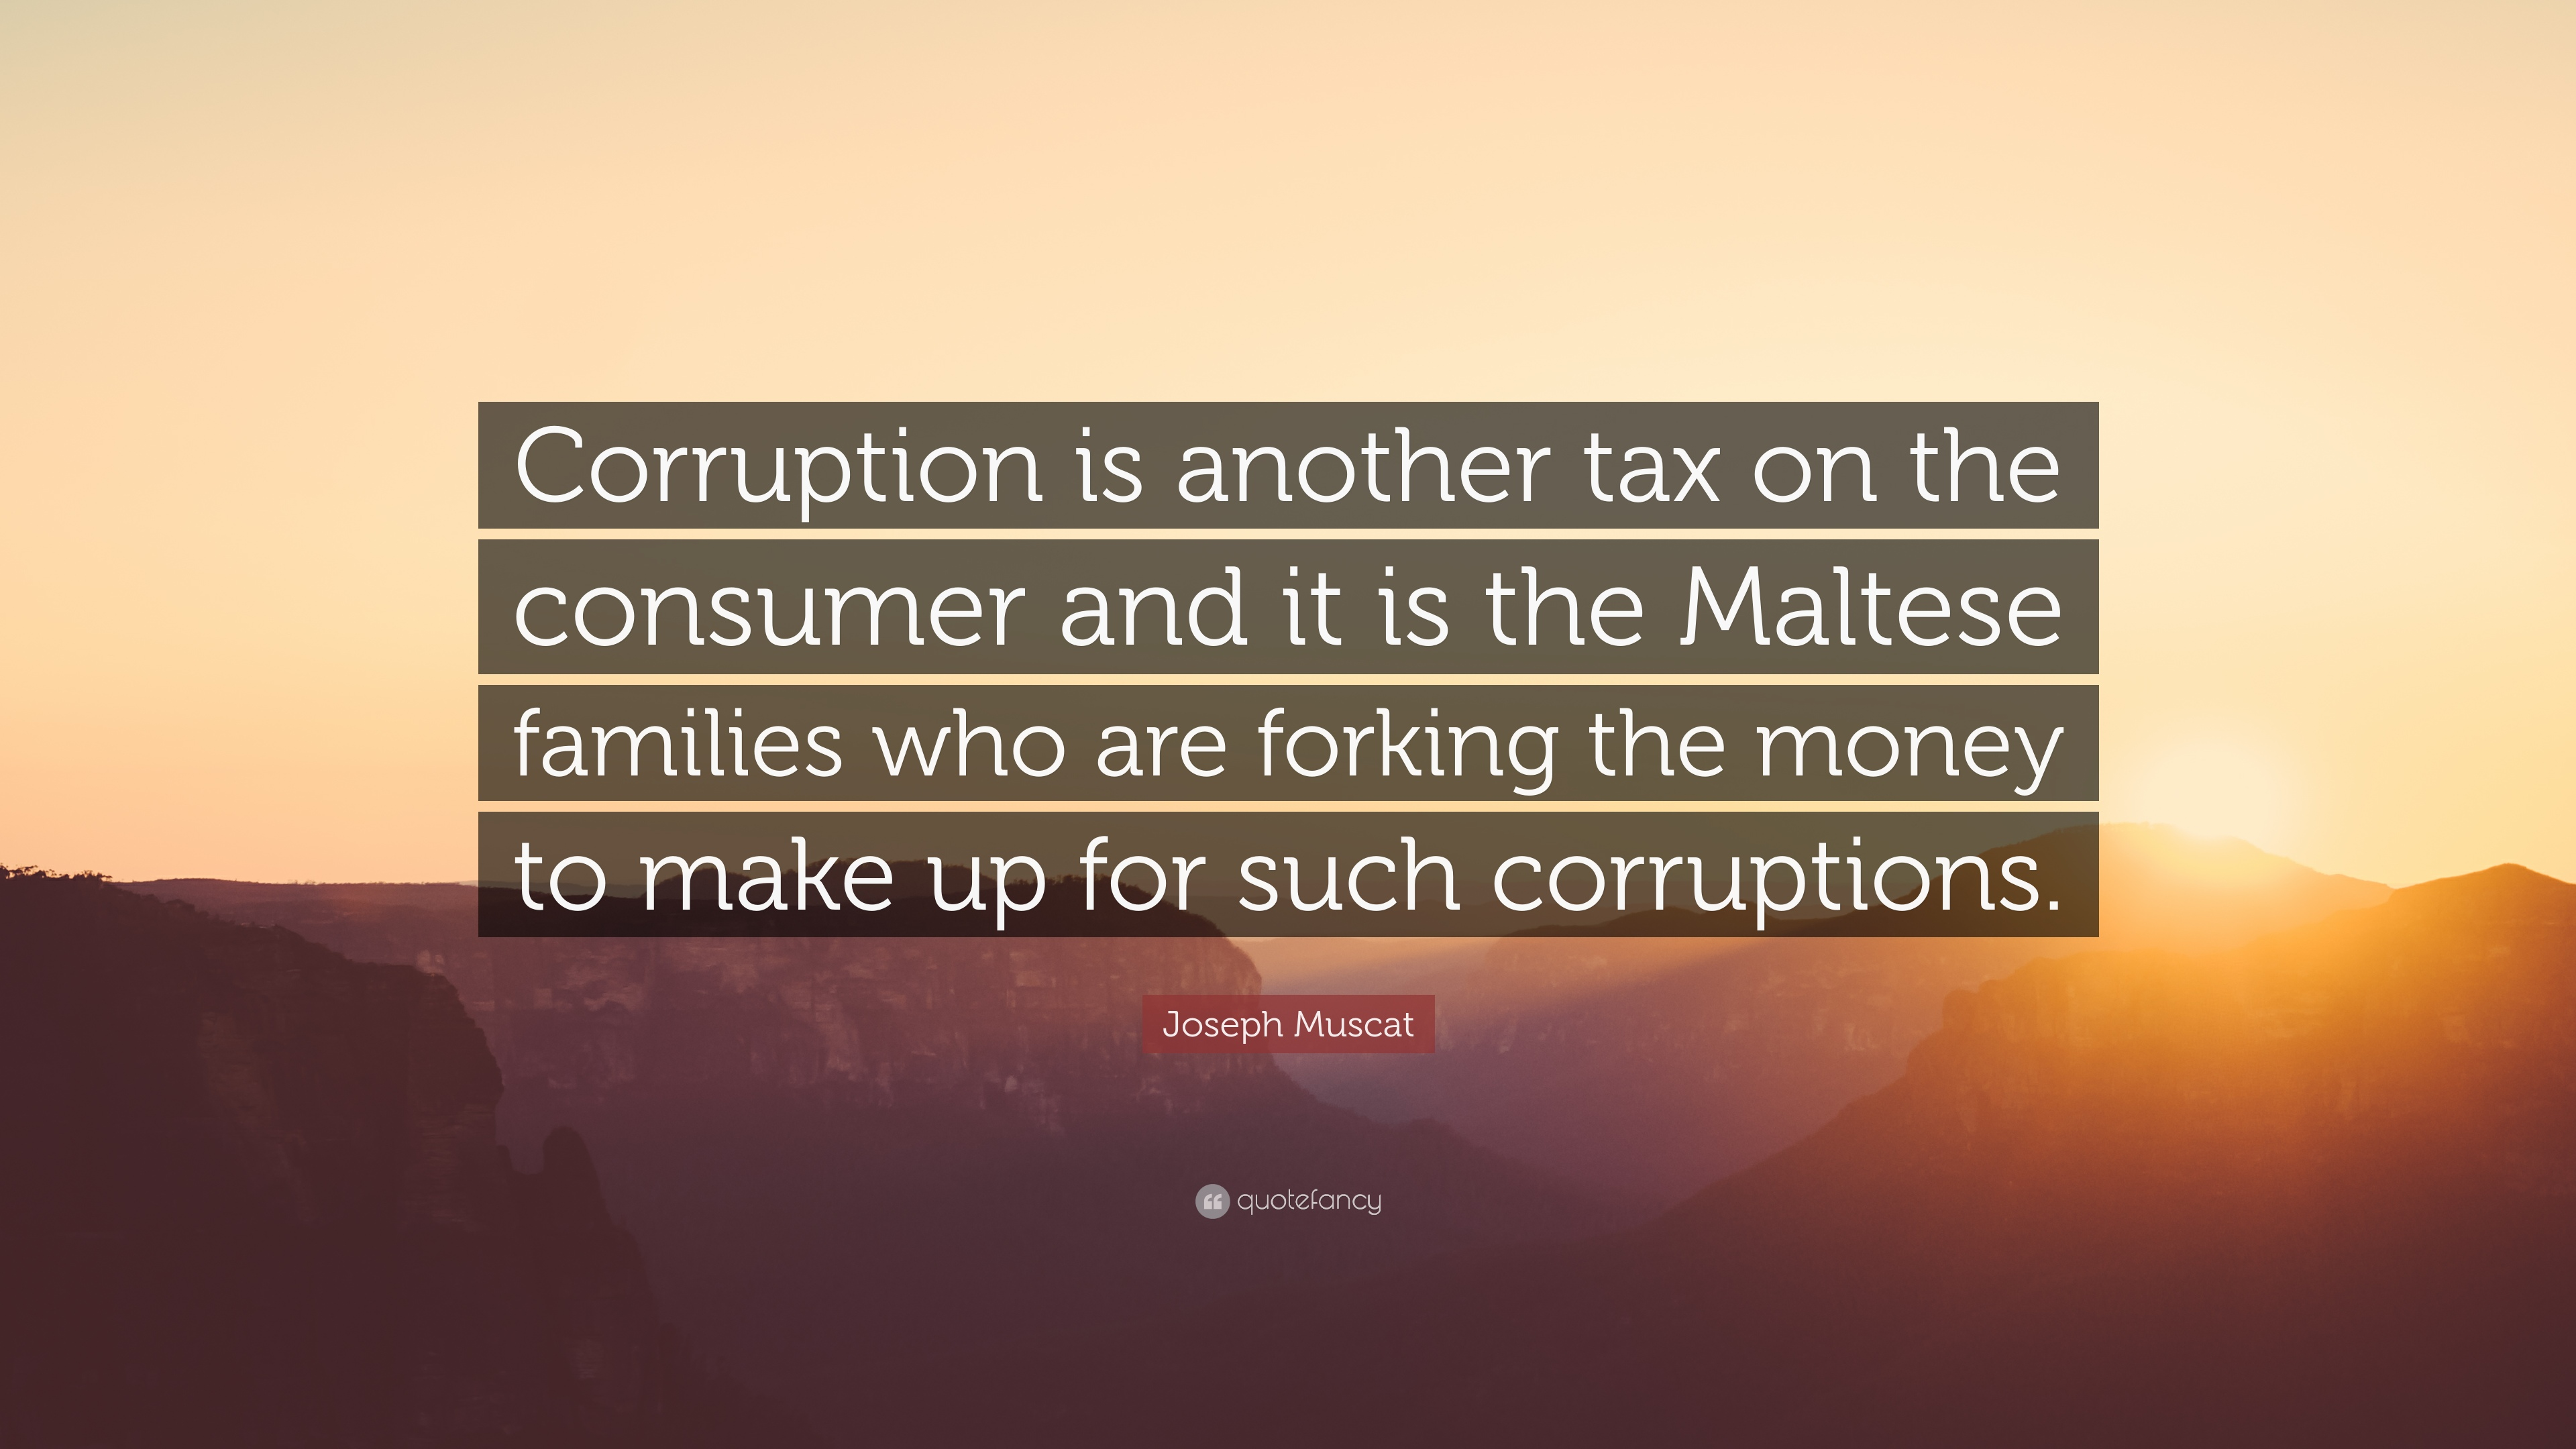 corruption quotes Books about corruption click this icon to engrave the quote on mugs, bookmarks, t-shirts and much more.